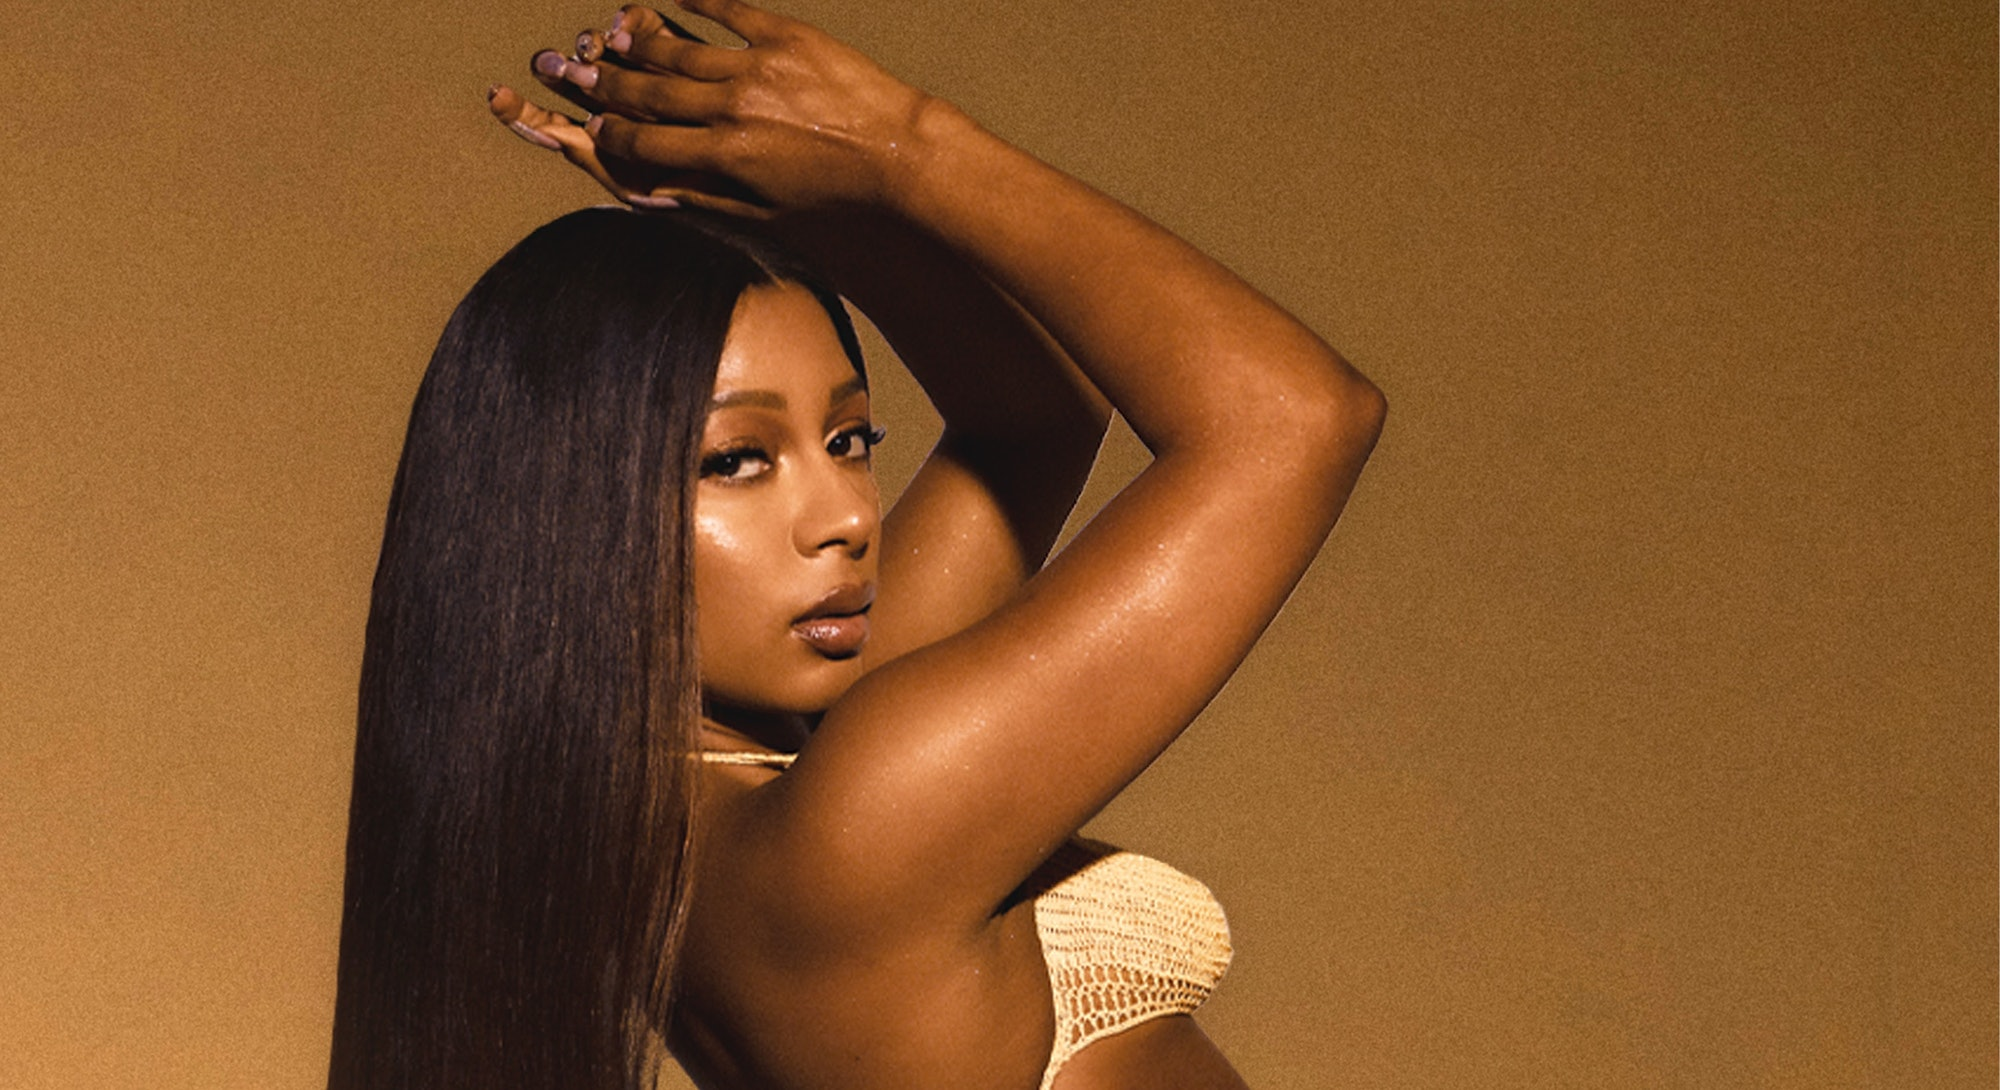 Victoria Monét poses with her hands clasped above her head.